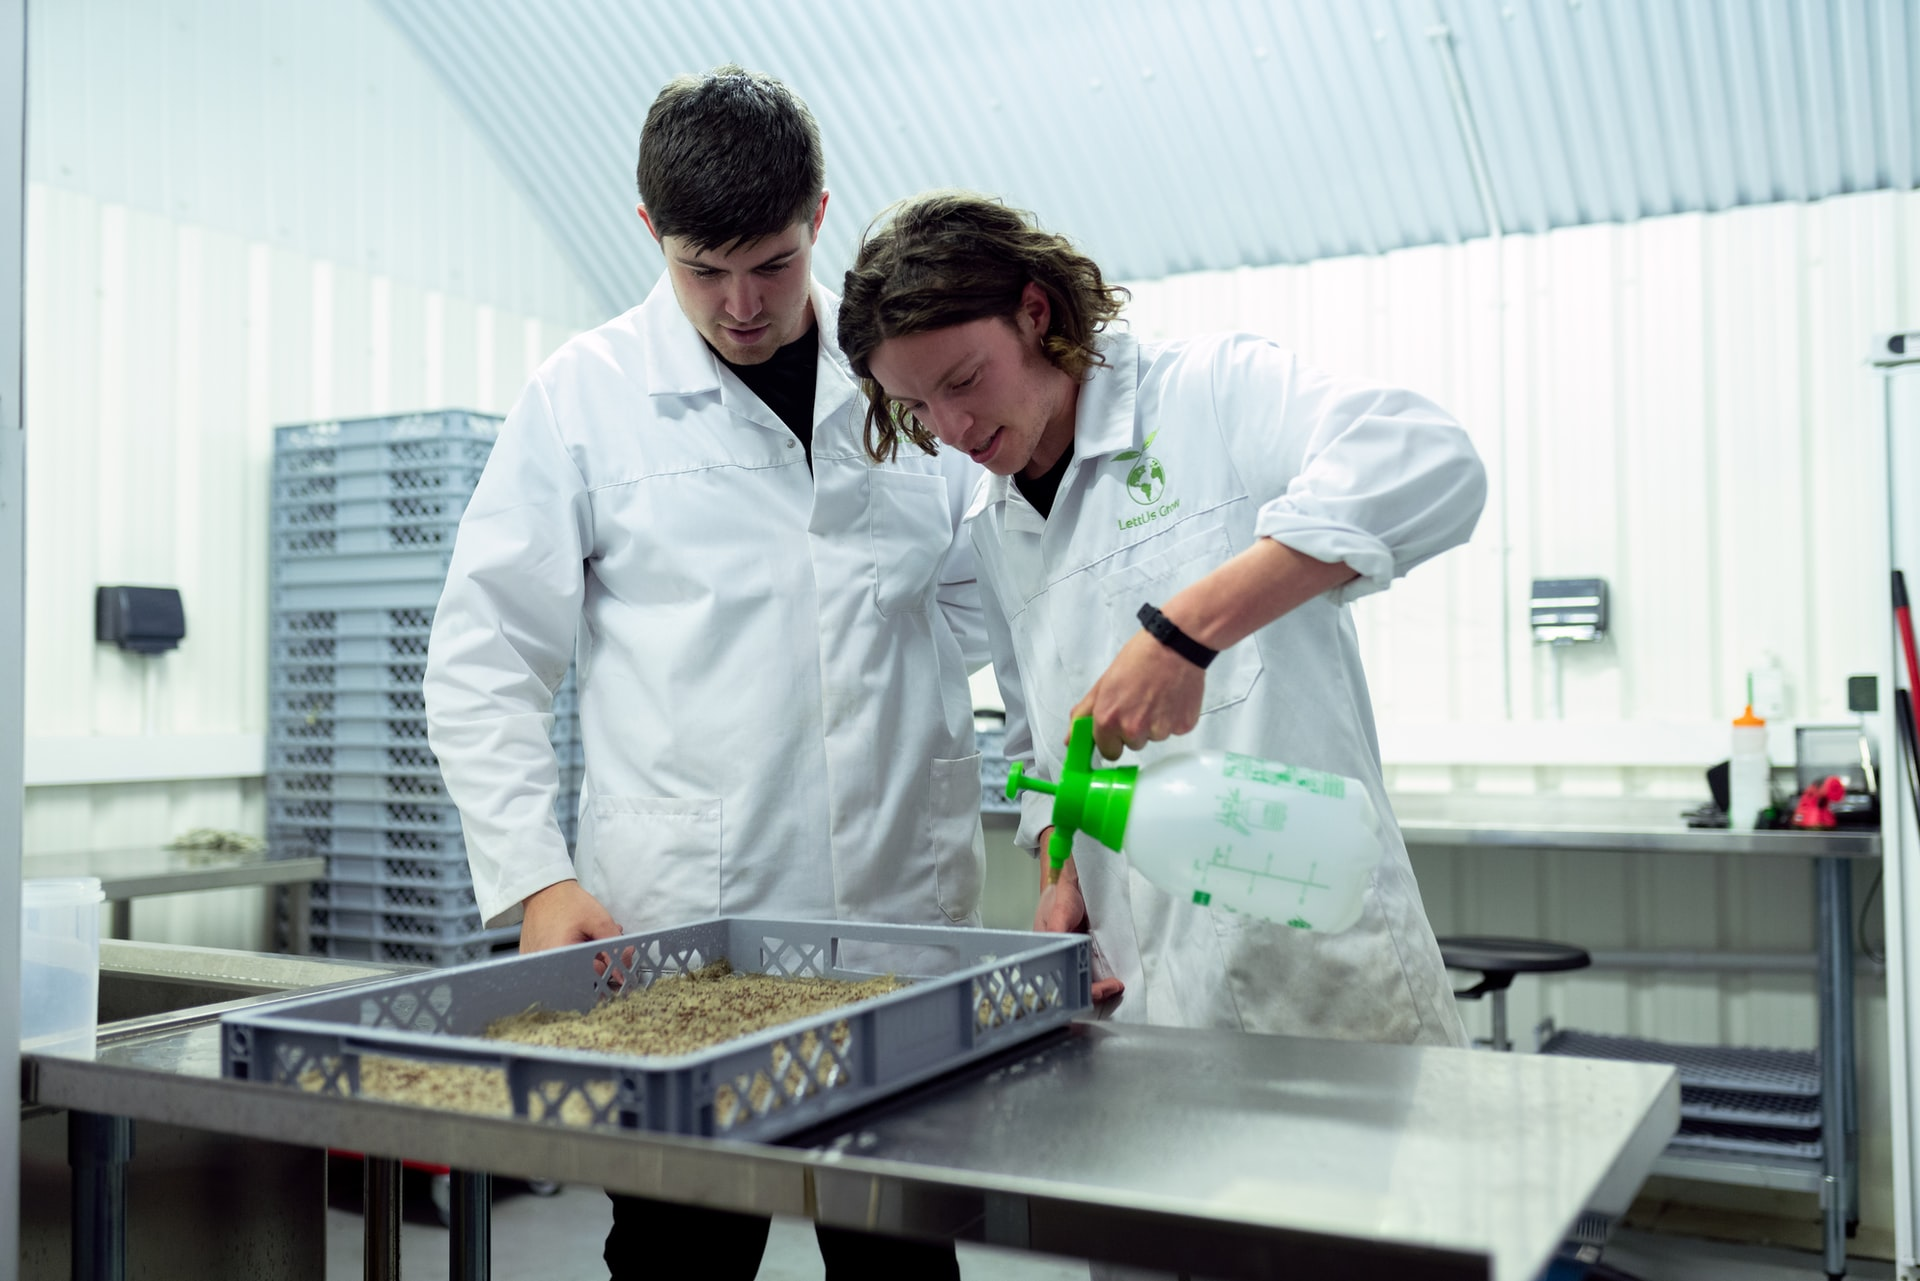 Male engineers spray seeds with nutrients in sustainable indoor farming practices